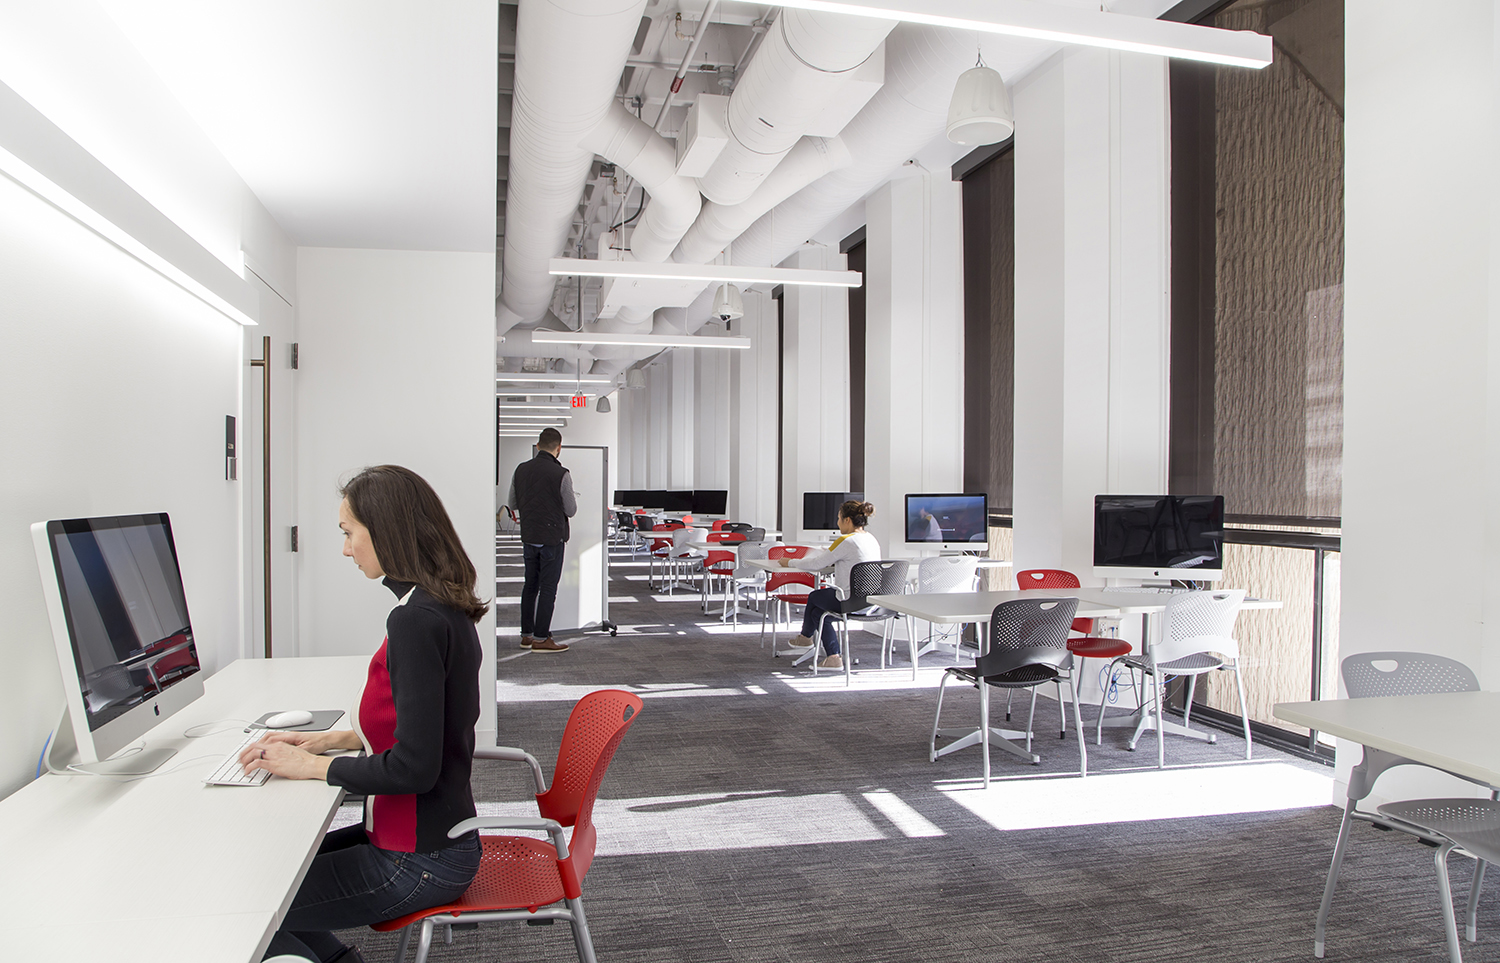 University Writing Center work space. Image courtesy Gensler.